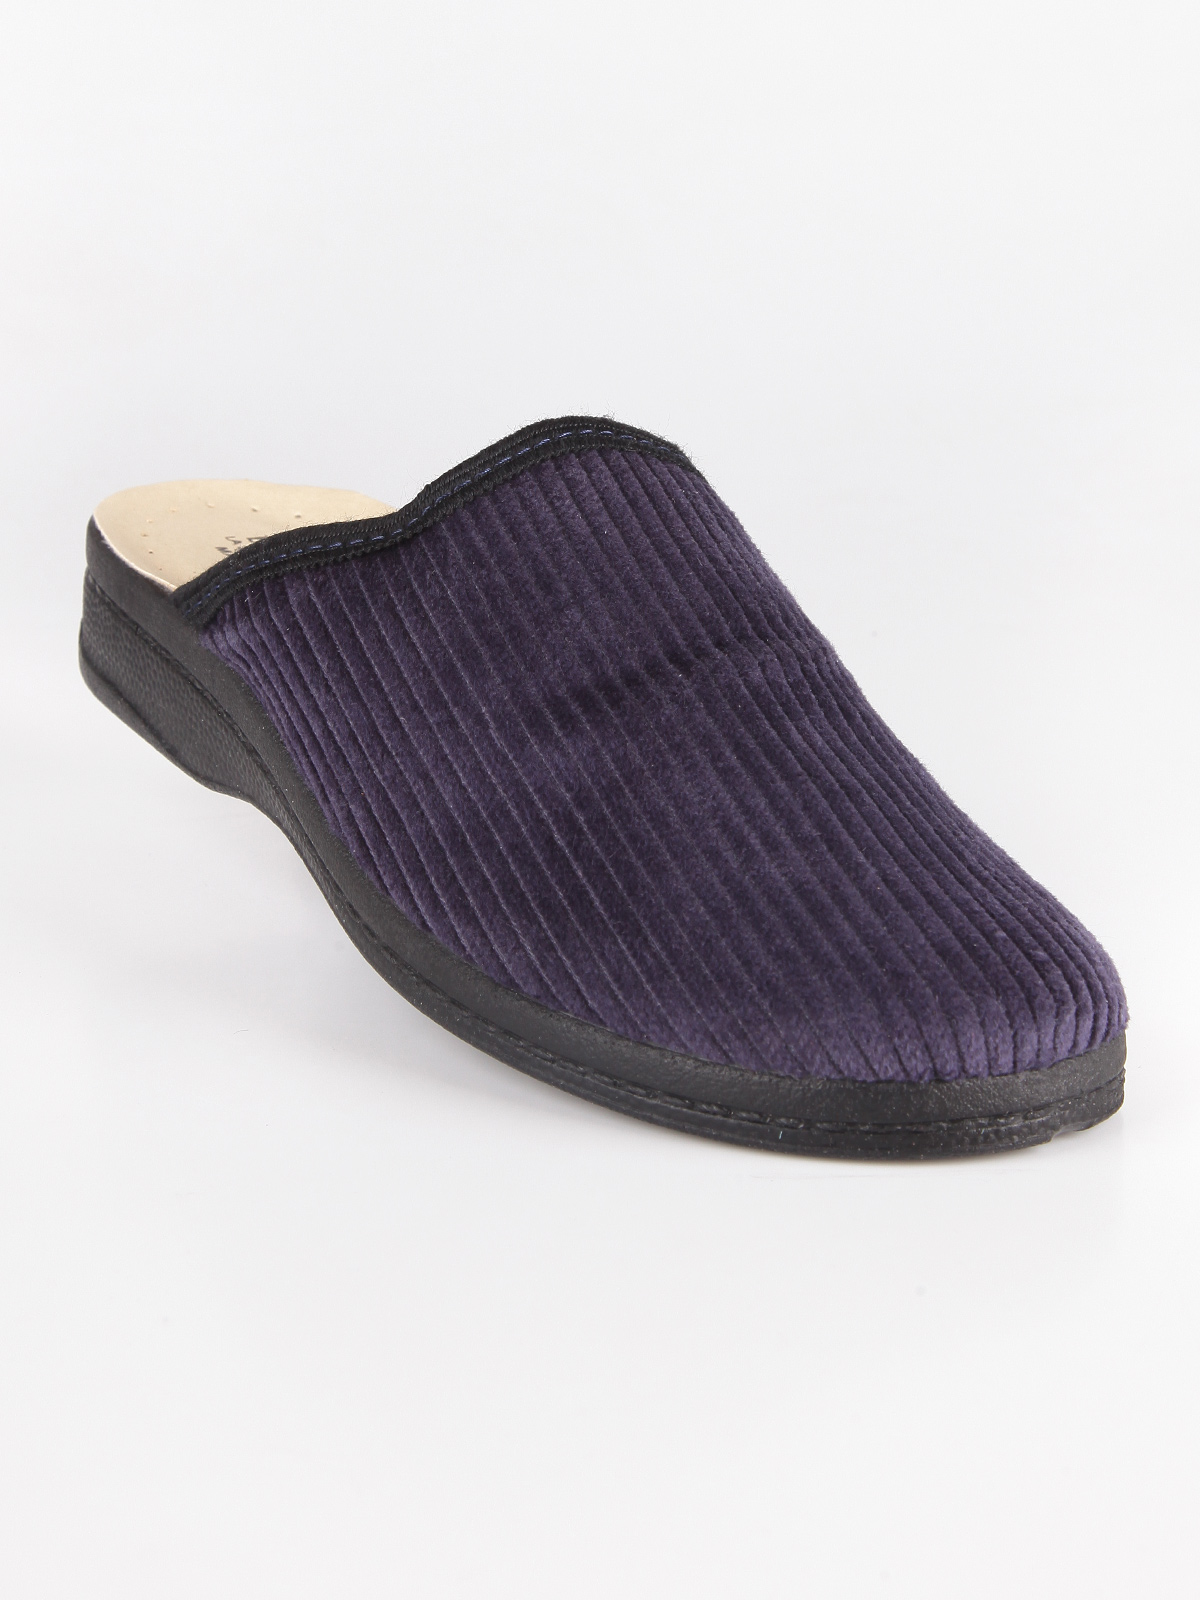 Man's Autumn Winter Cosy Solid Warm Slippers